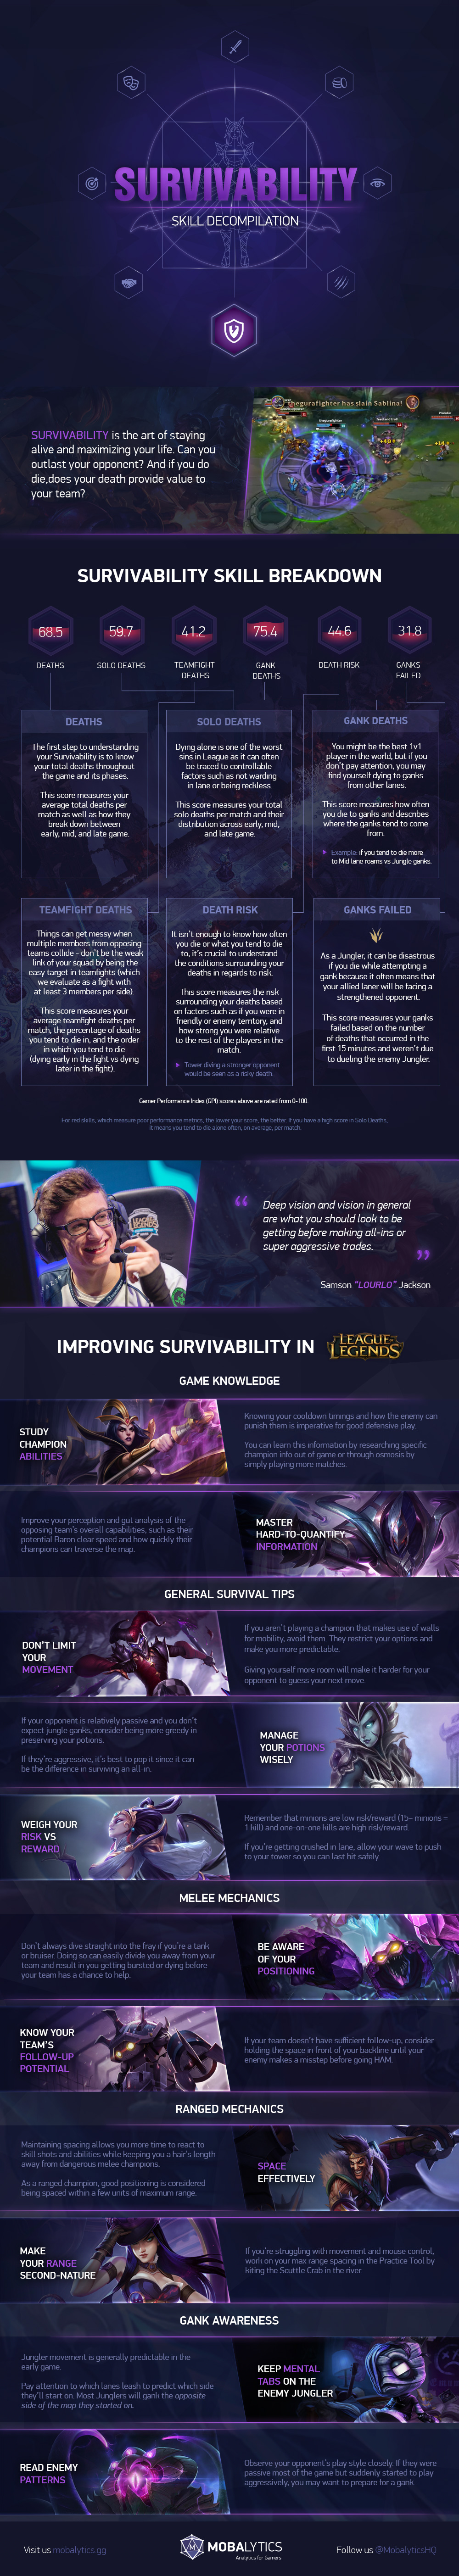 Survivability 2018 Infographic